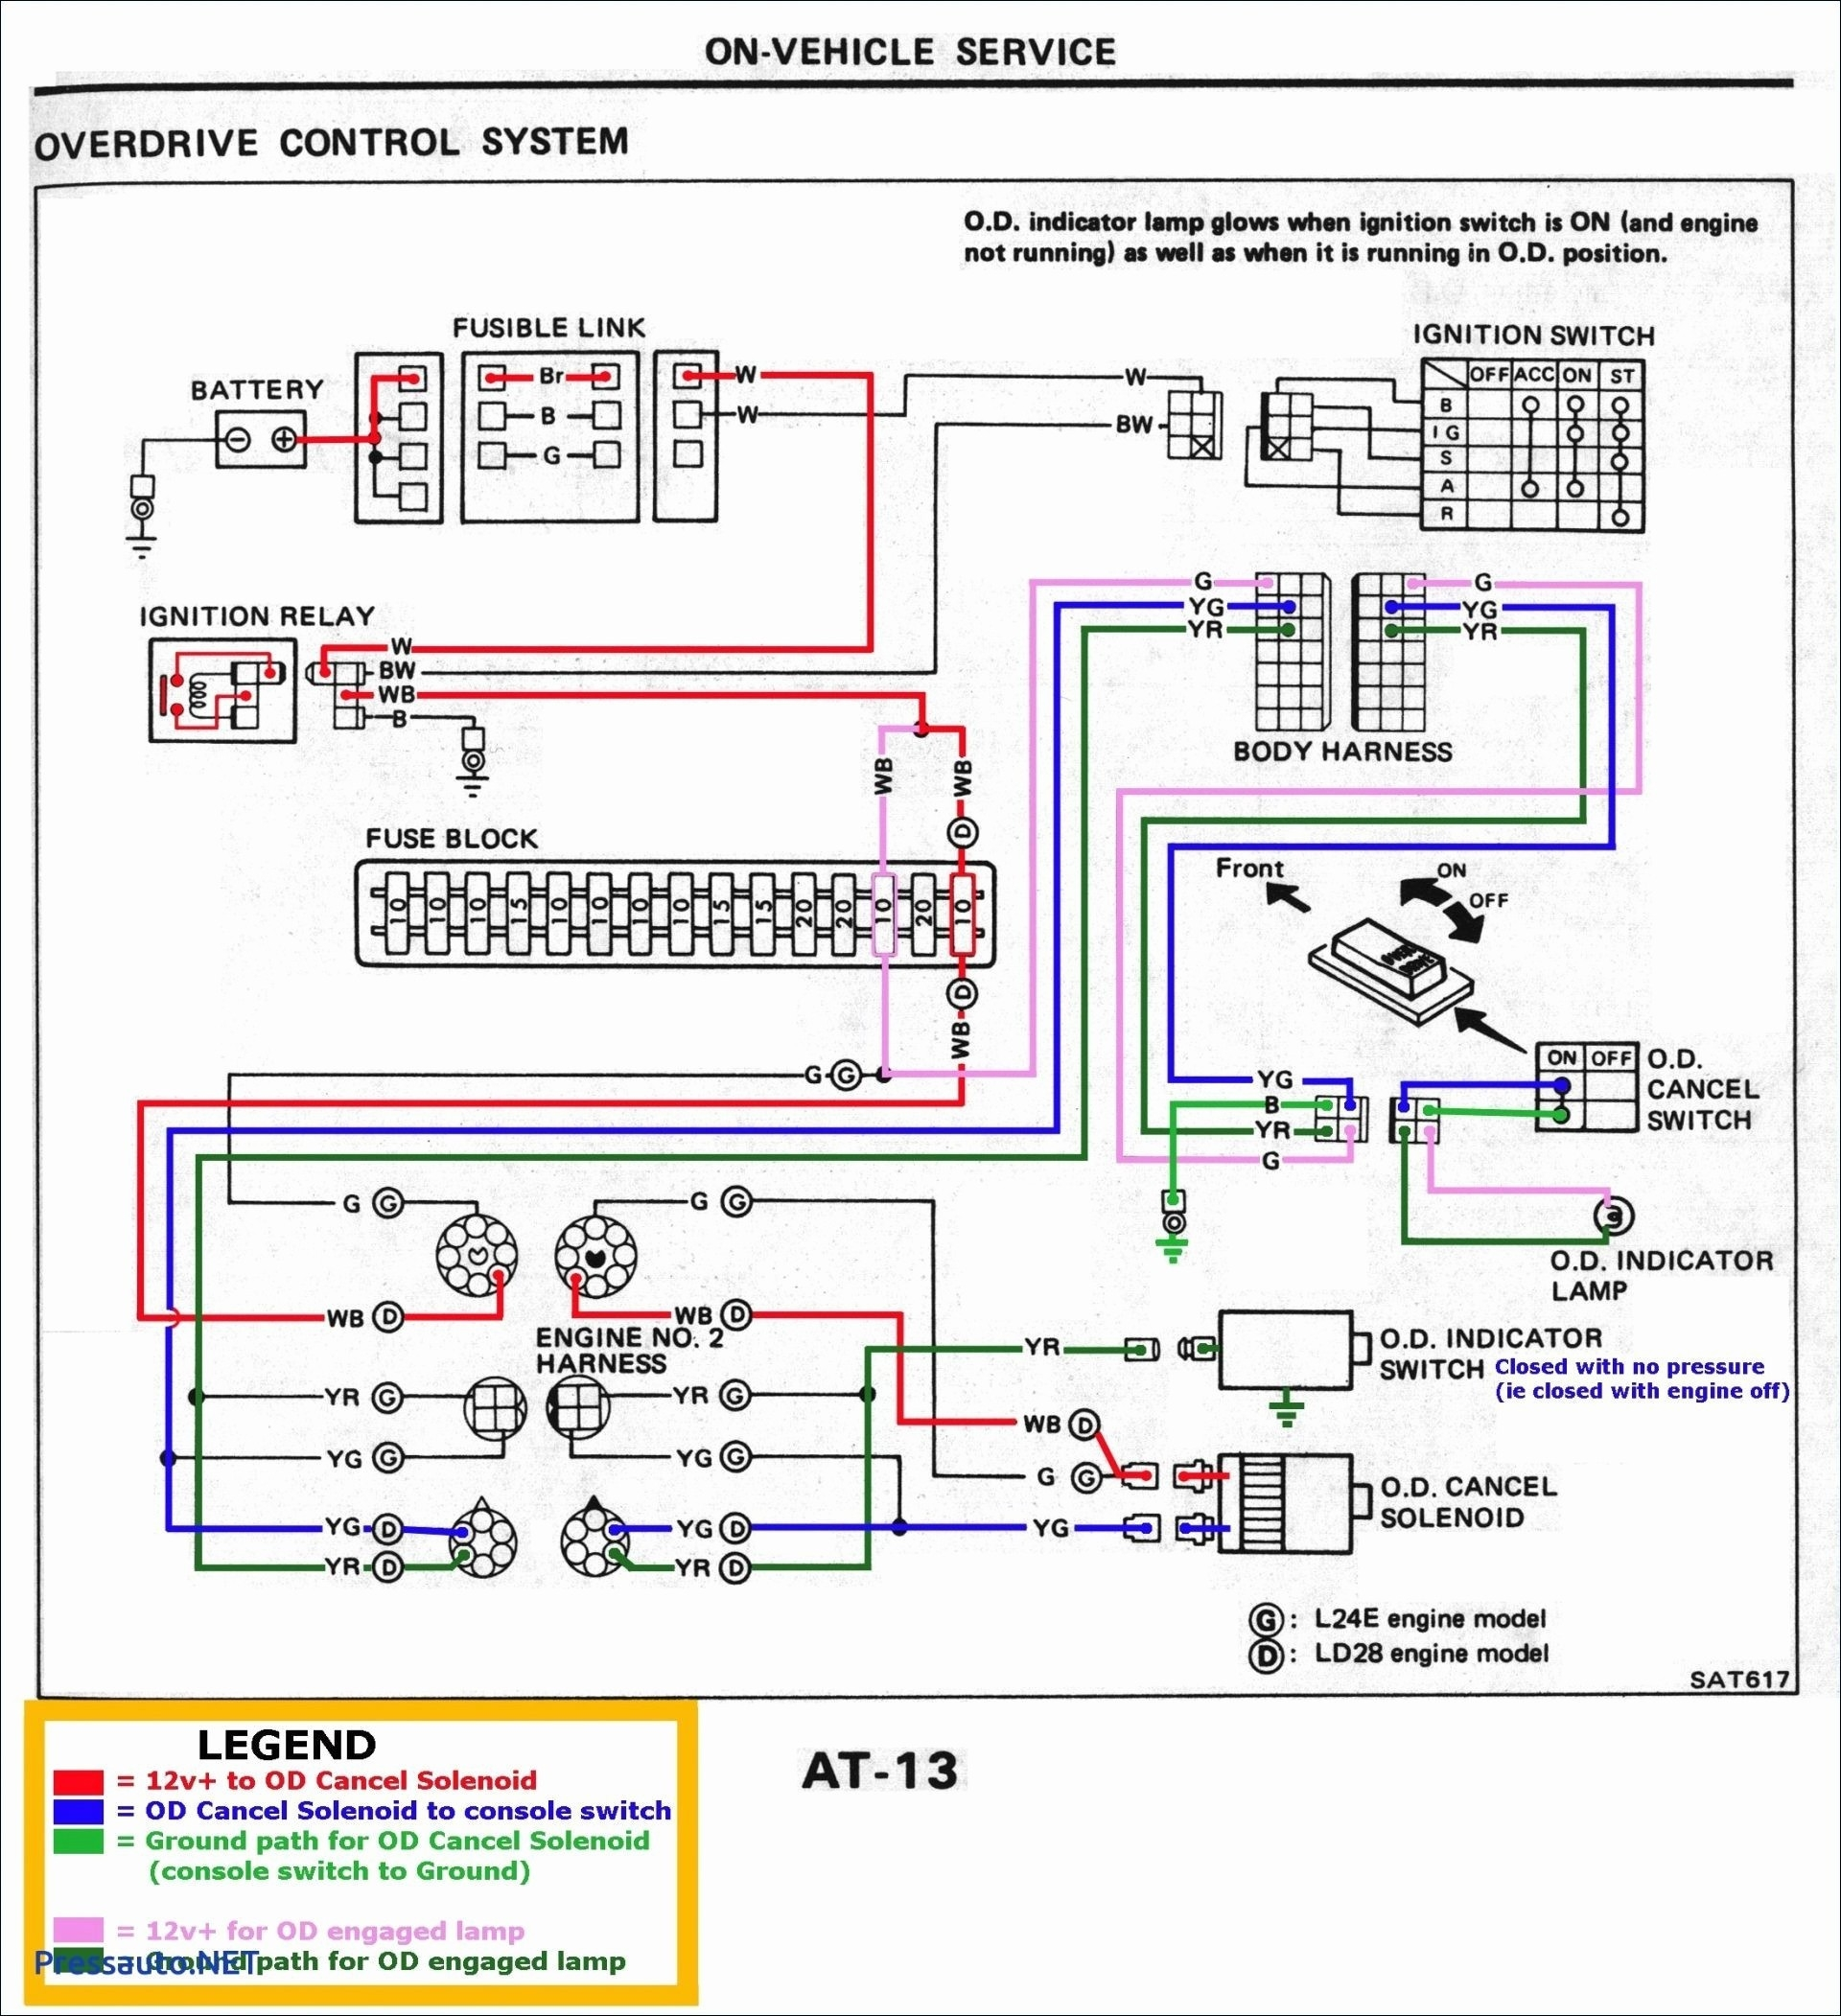 2004 Dodge Ram 2500 Wiring Diagram | Free Wiring Diagram